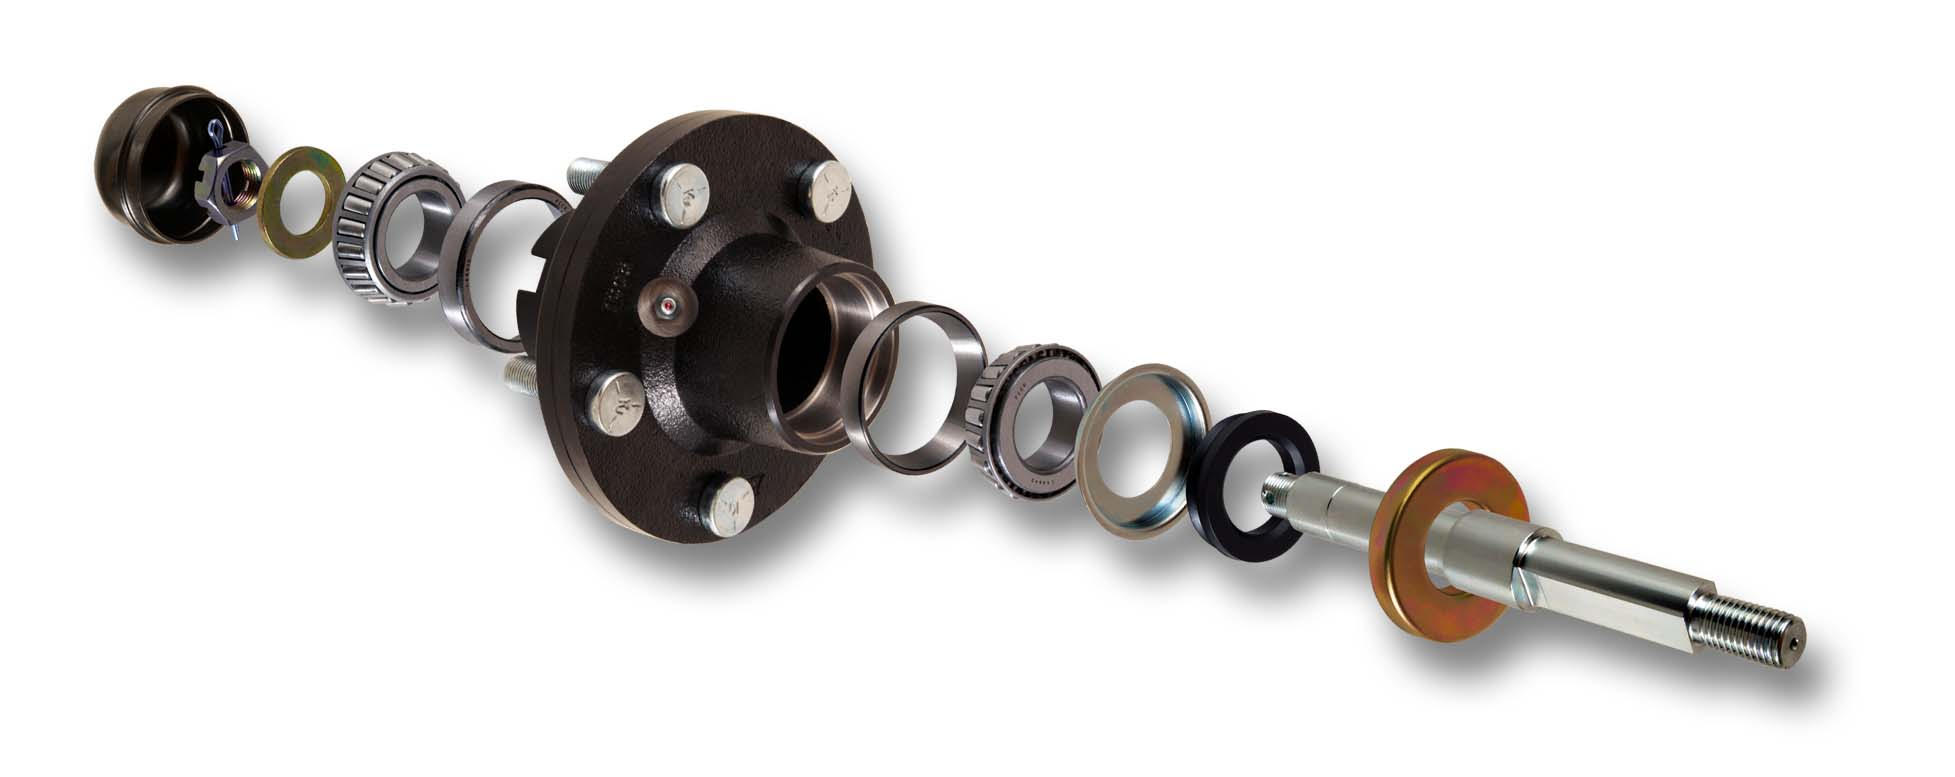 packer wheel hub and spindle assembly